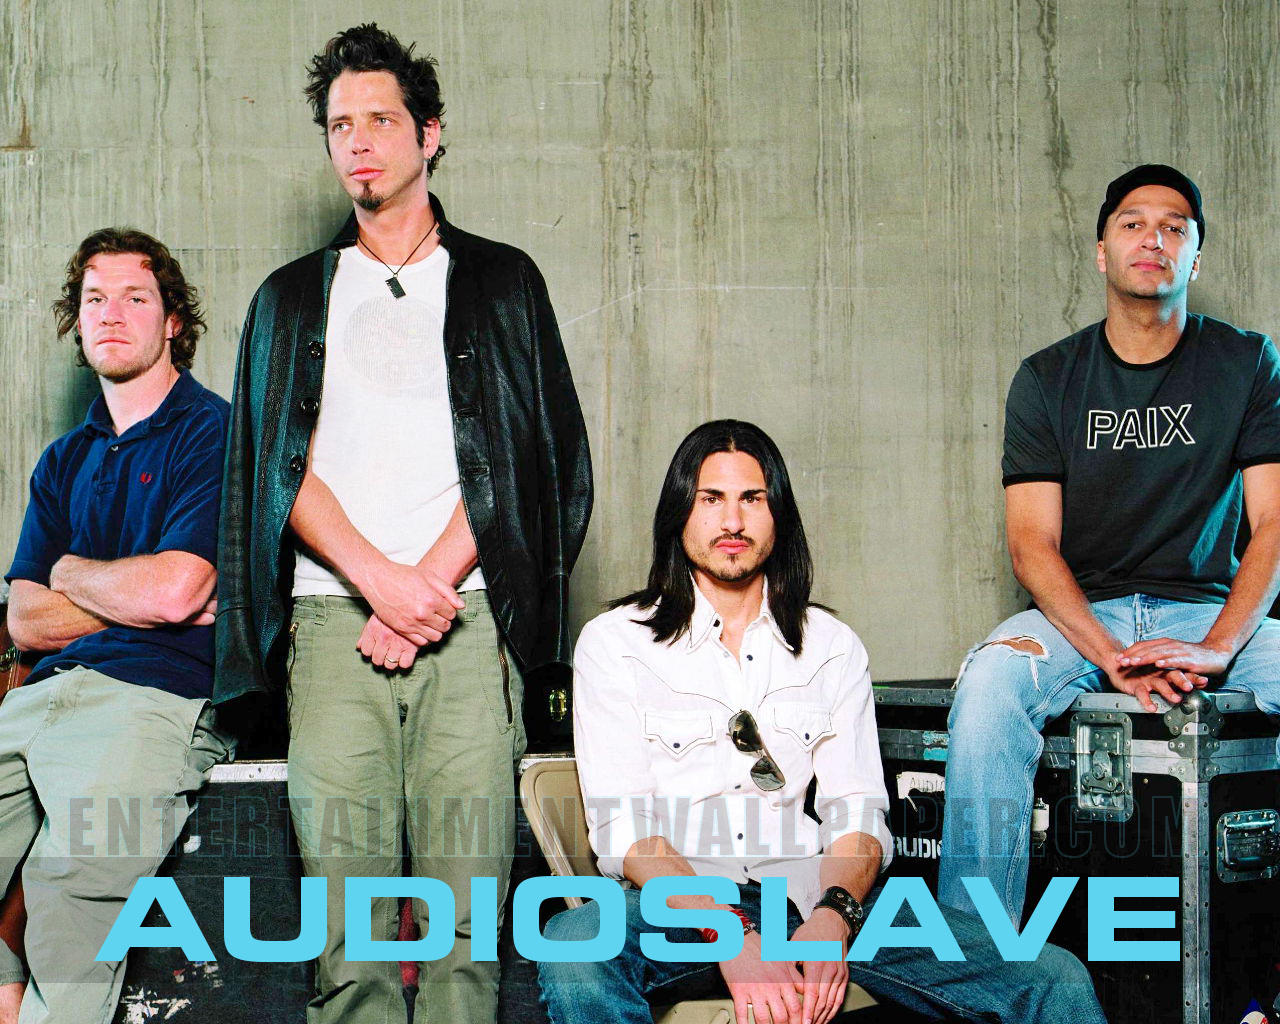 youtube.com audioslave show me how to live